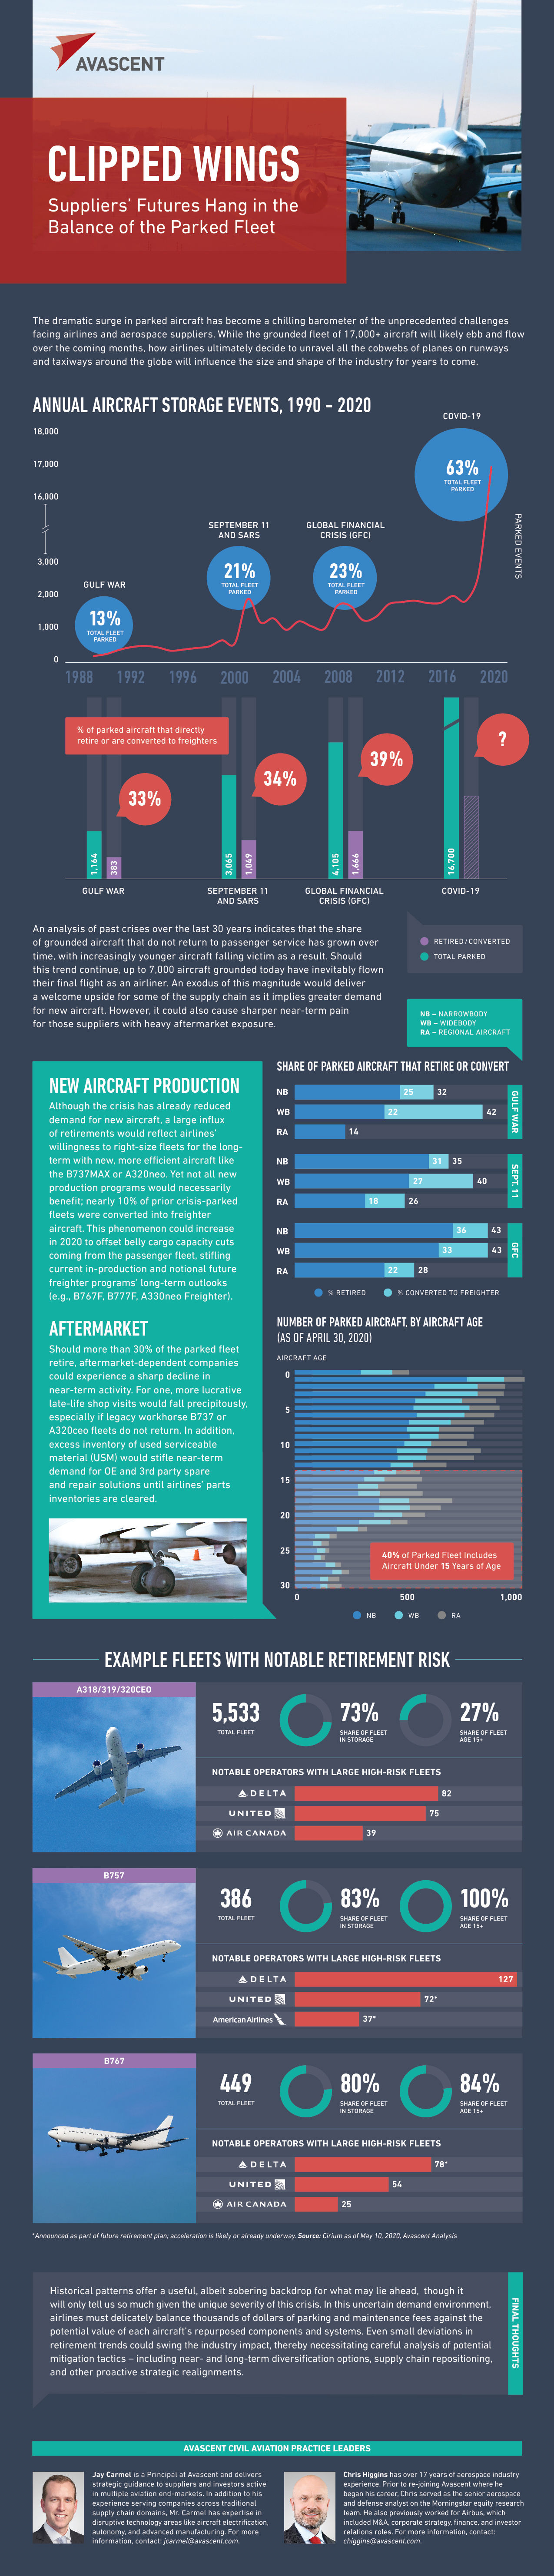 Avascent_Infographic_Clipped_Wings_FINAL